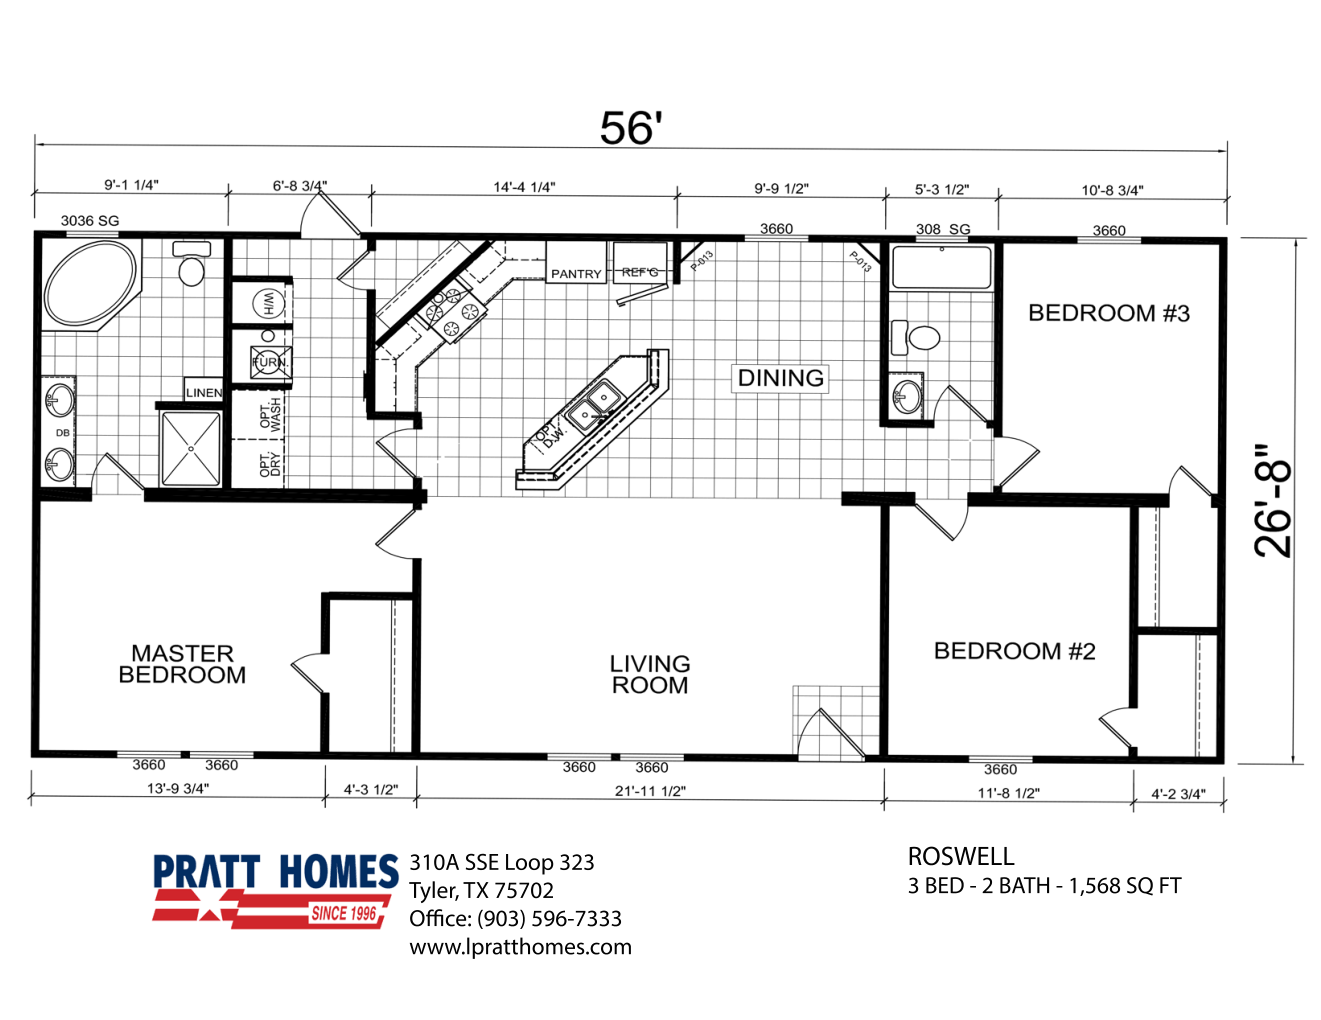 Floor Plan for house model Roswell by Pratt from Tyler Texas